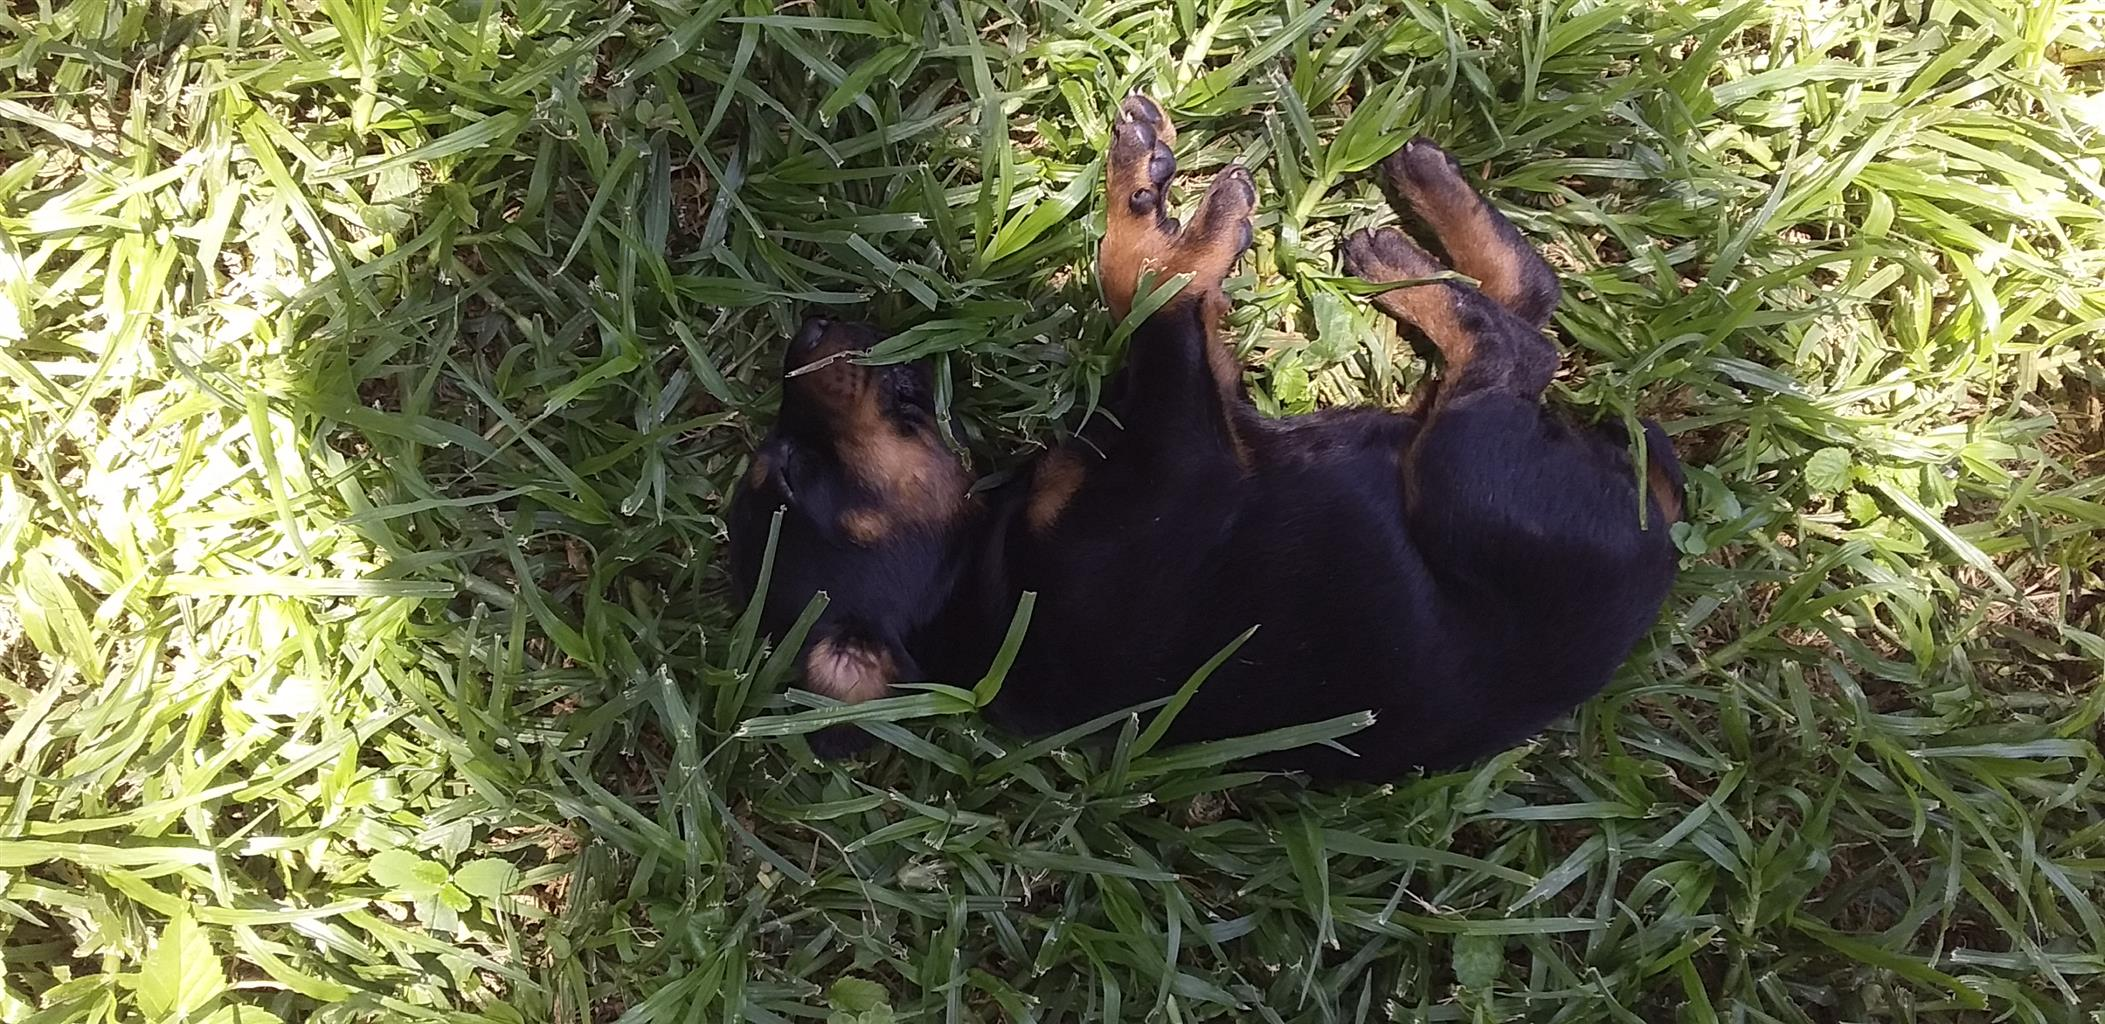 DOBERMAN PUPPIES FOR SALE - LARGE BREED